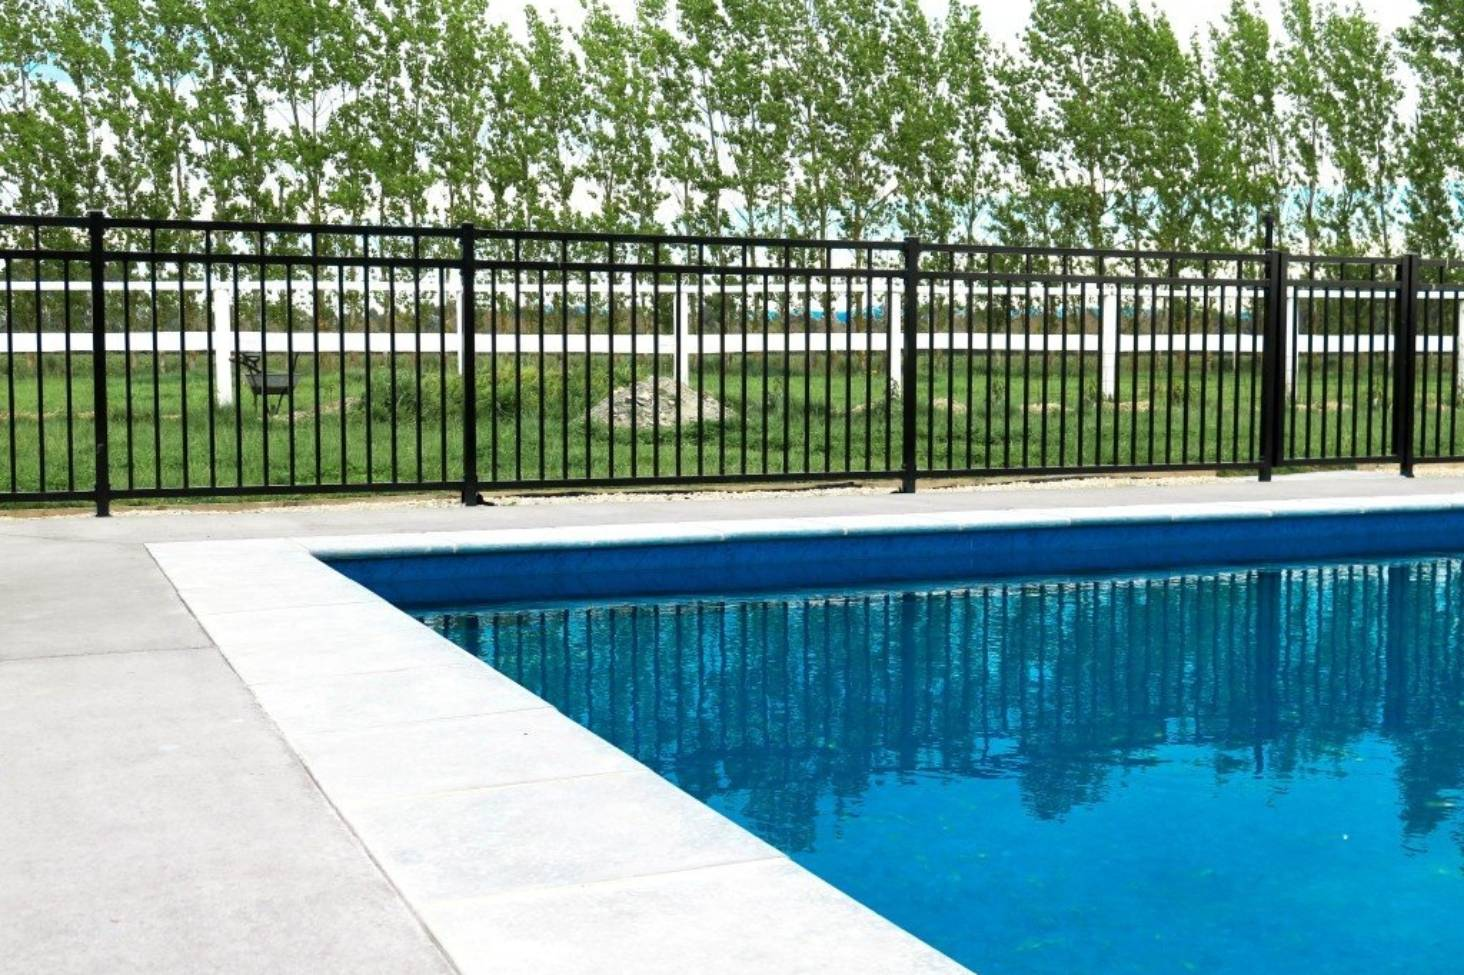 Legislation Loophole Allows Pool Owners To Take Cover And Ditch The